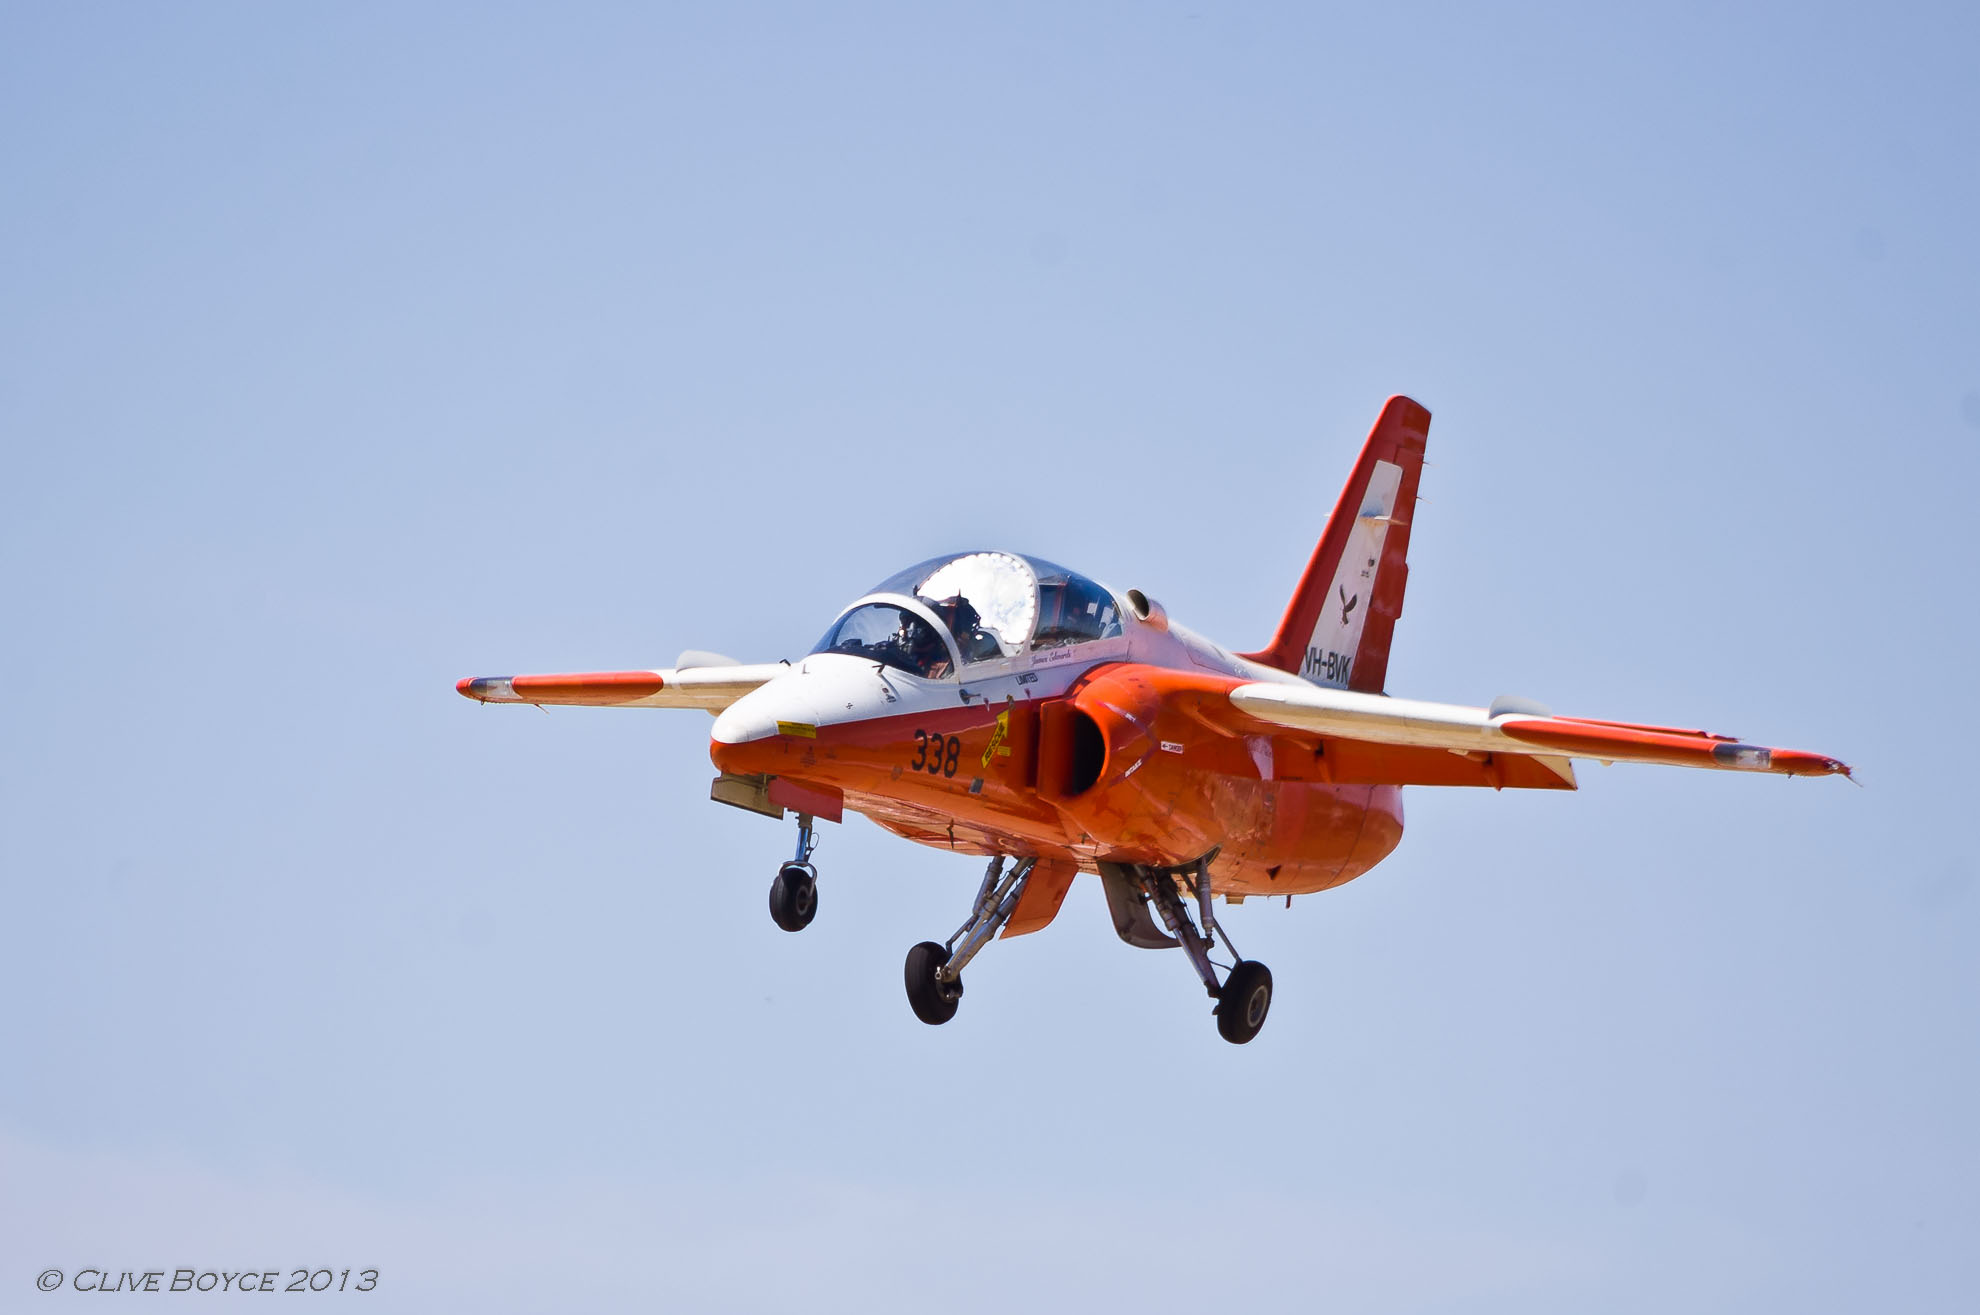 Jamestown_Air_Spectacular SIA_Marchetti_S-211